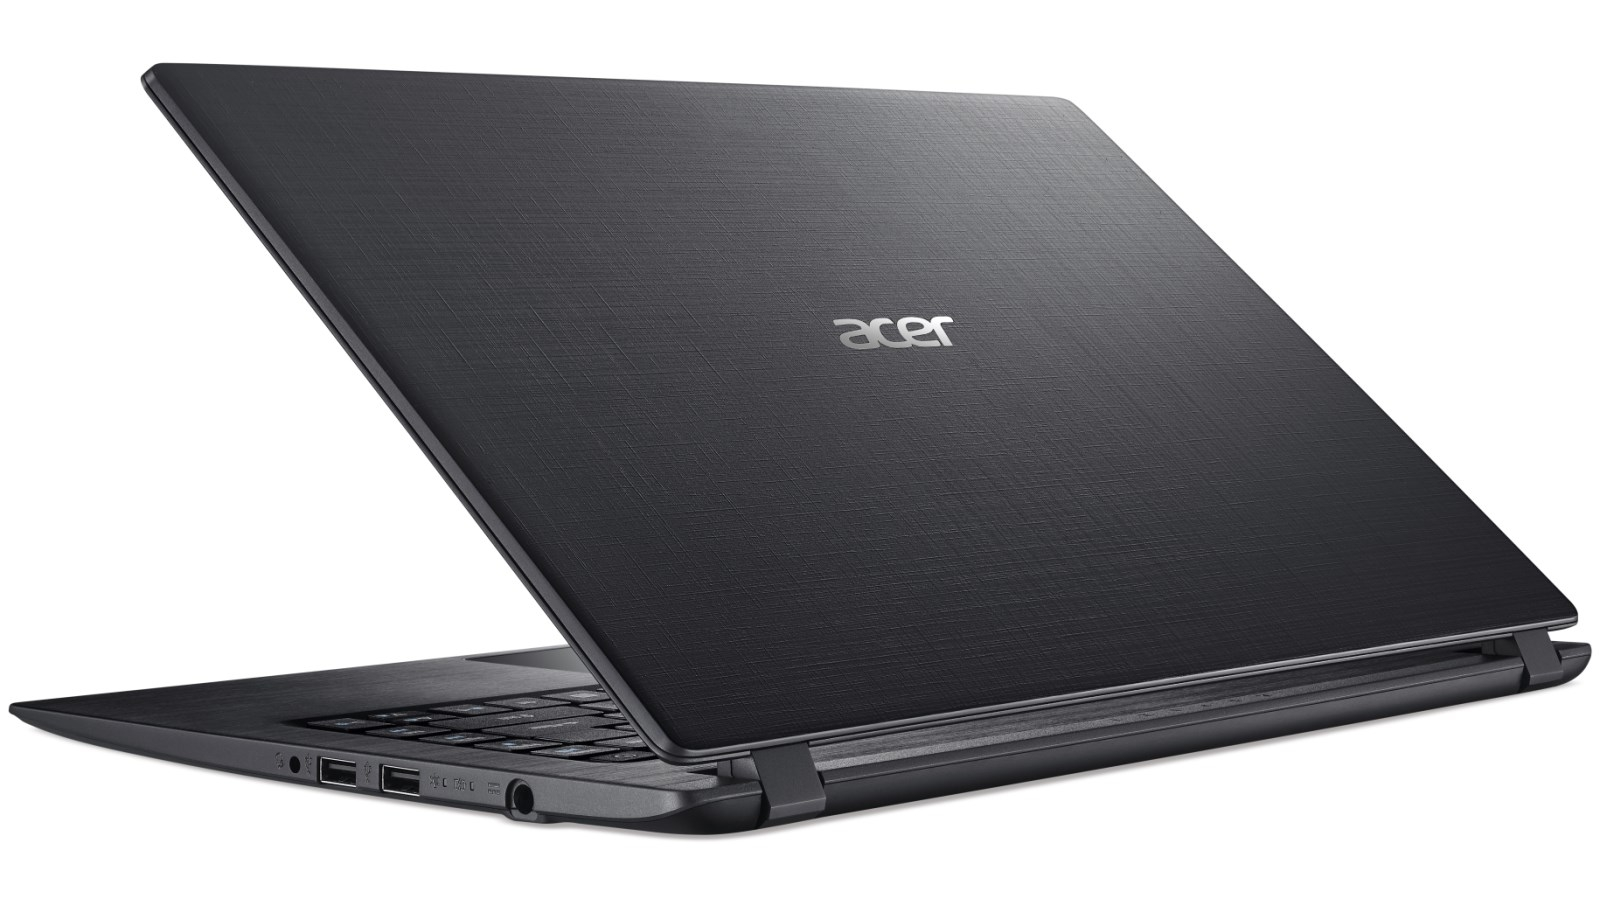 Acer Aspire A114-31-P438 14-inch Laptop